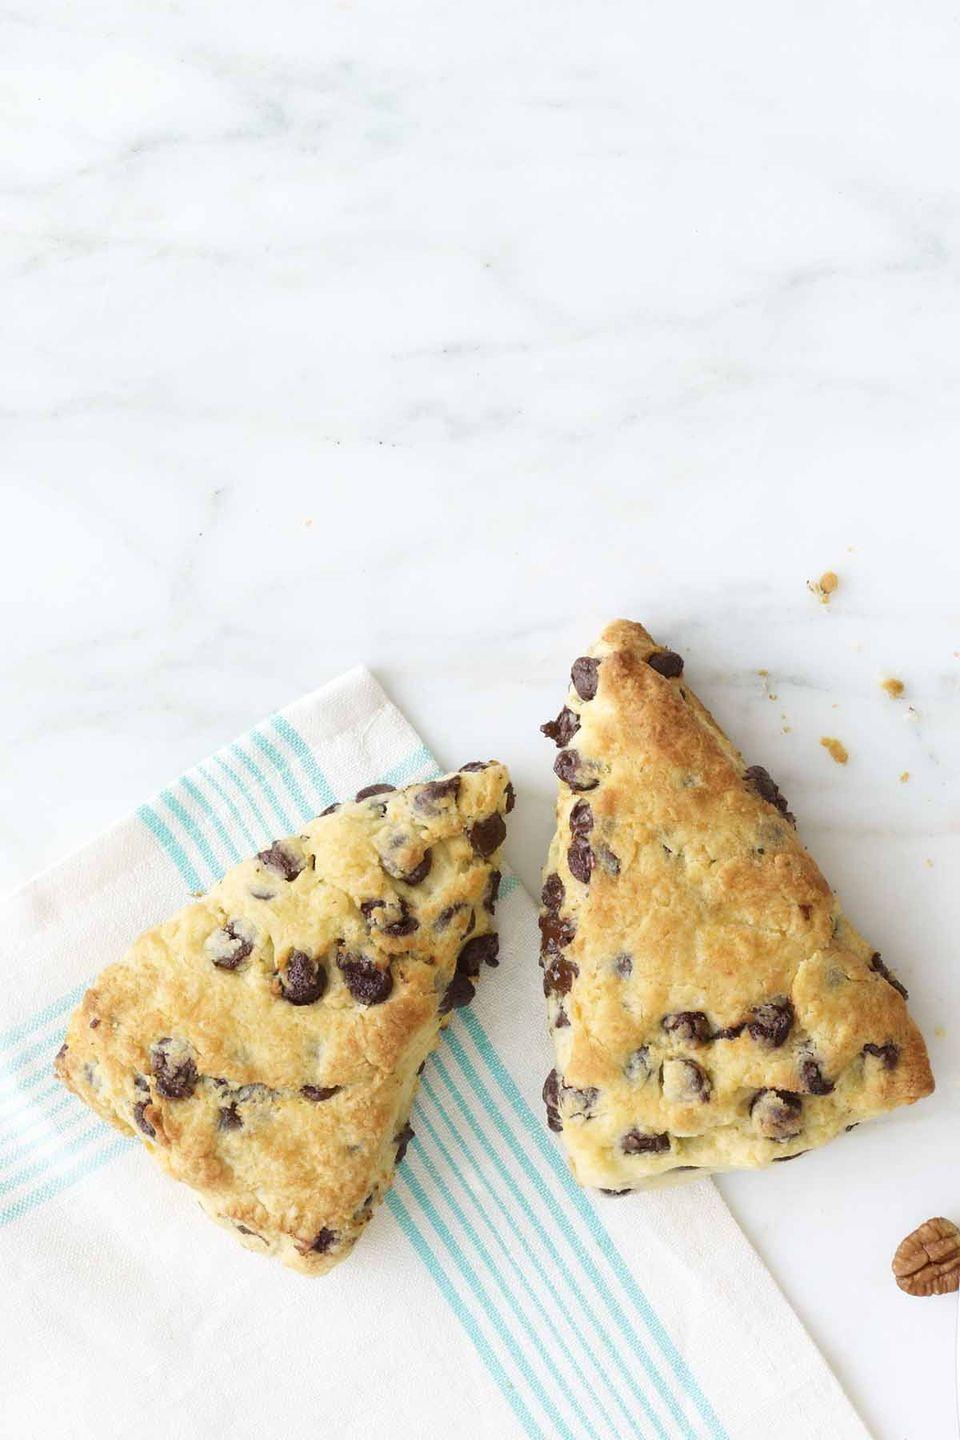 """<p>Wake mom up with a sweet treat that features every's favorite ingredient: chocolate! </p><p><strong><a href=""""https://www.womansday.com/food-recipes/food-drinks/recipes/a12057/sour-cream-chocolate-chip-scones-recipe-wdy0413/"""" rel=""""nofollow noopener"""" target=""""_blank"""" data-ylk=""""slk:Get the Chocolate Chip Scones recipe."""" class=""""link rapid-noclick-resp""""><em>Get the Chocolate Chip Scones recipe. </em></a></strong> </p>"""